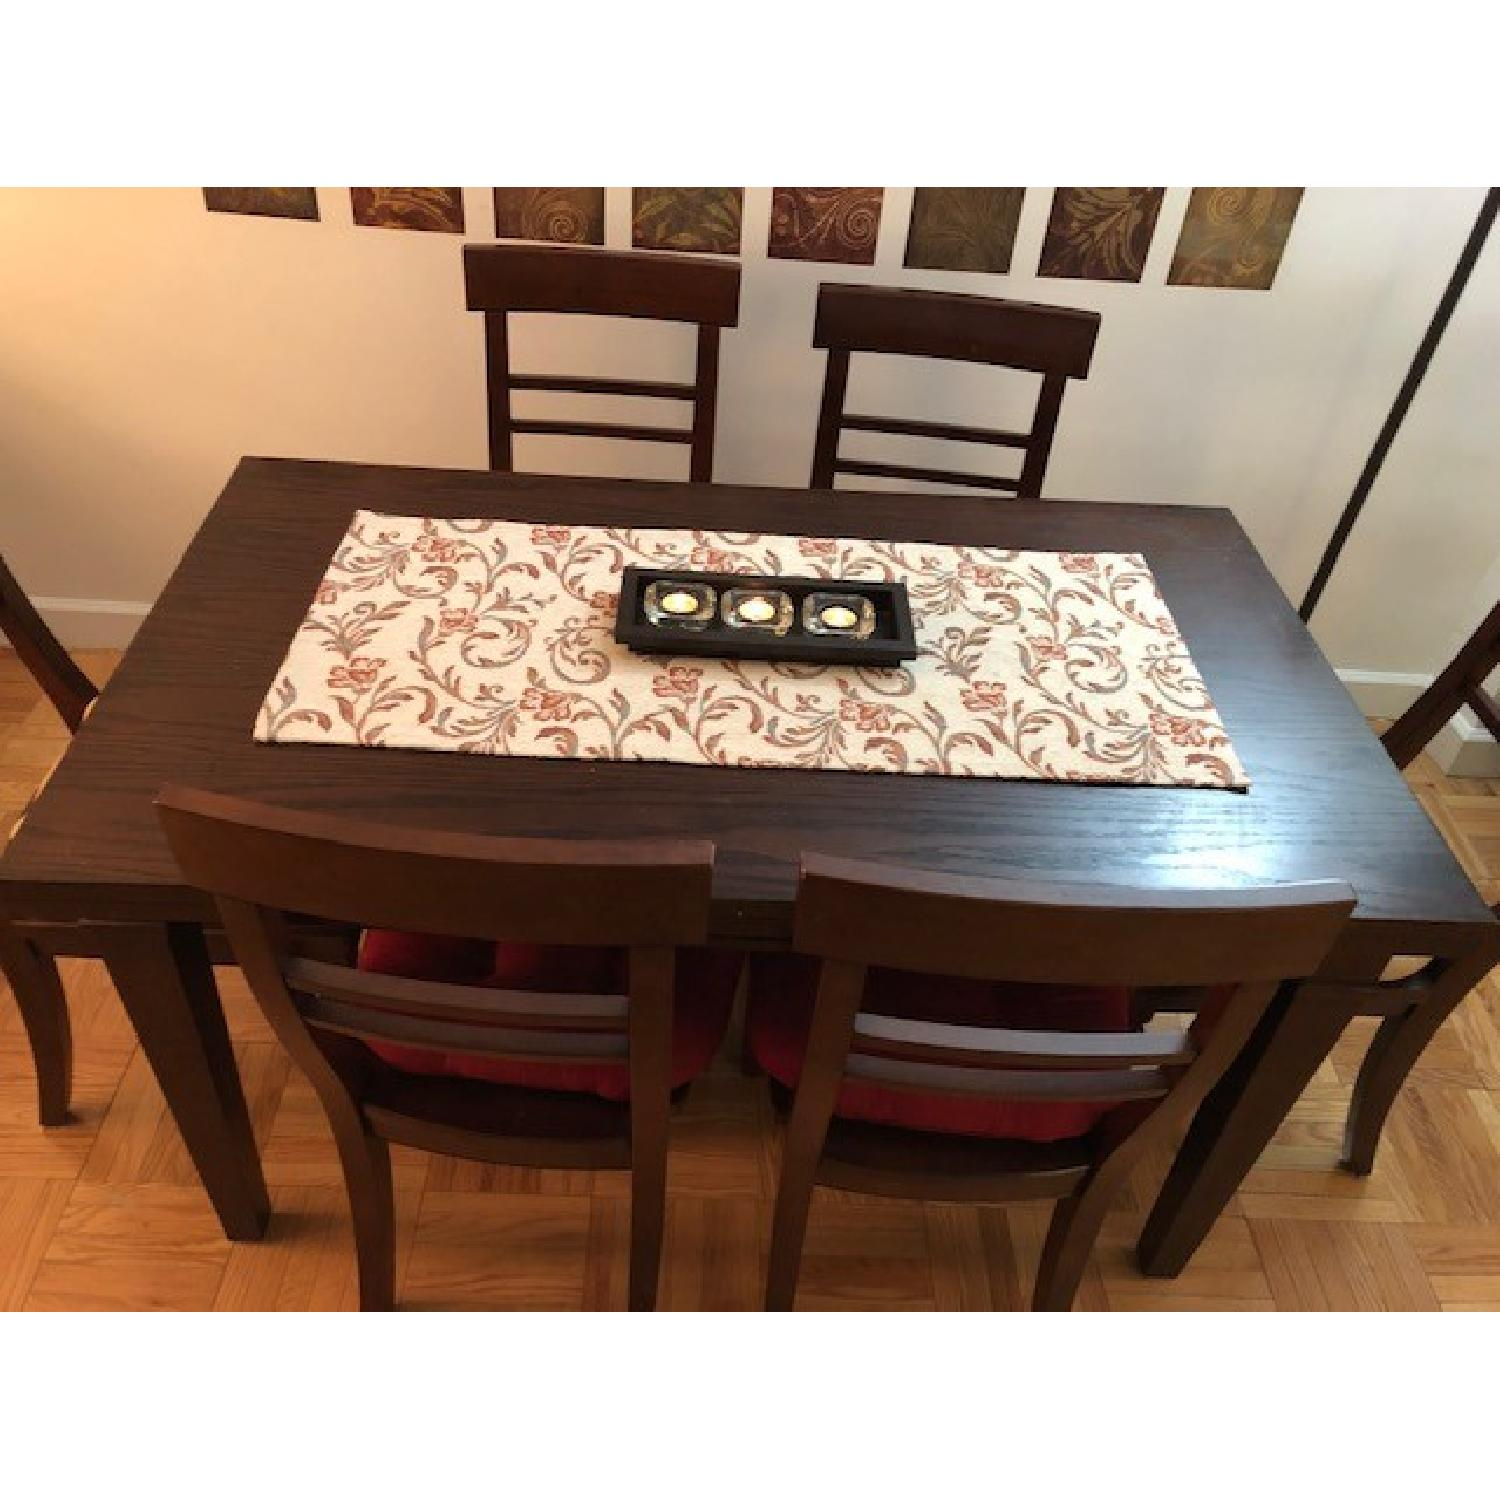 Crate & Barrel Table w/ 6 Chairs-4